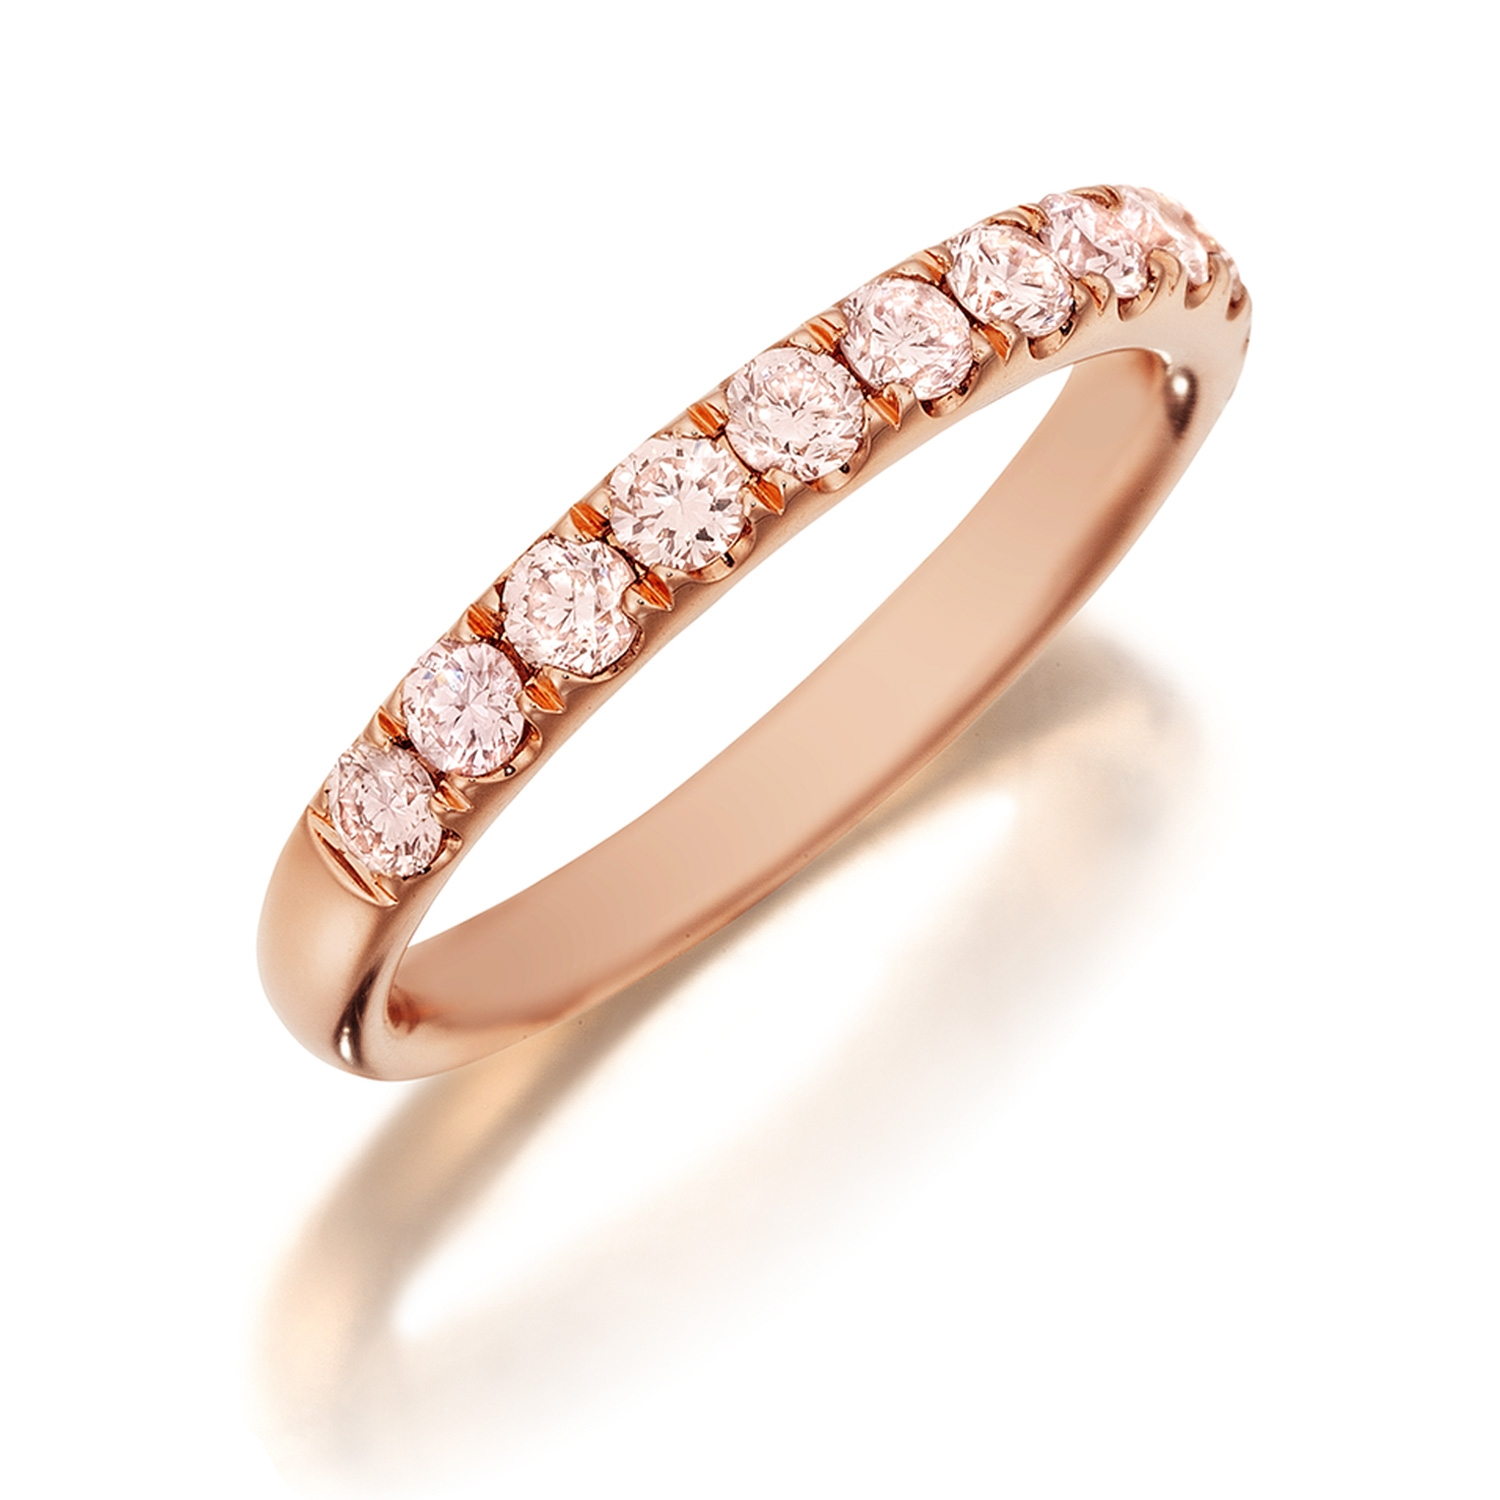 where womens diamonds boodles and natural intense full pale yellow size light rose hot heart of hallo bracelet band engagement ring jewellery pink wedding harmony rings set fancy teardrop with cut ashoka gold flower argyle white stone small diamond pave for loose gia carat quise